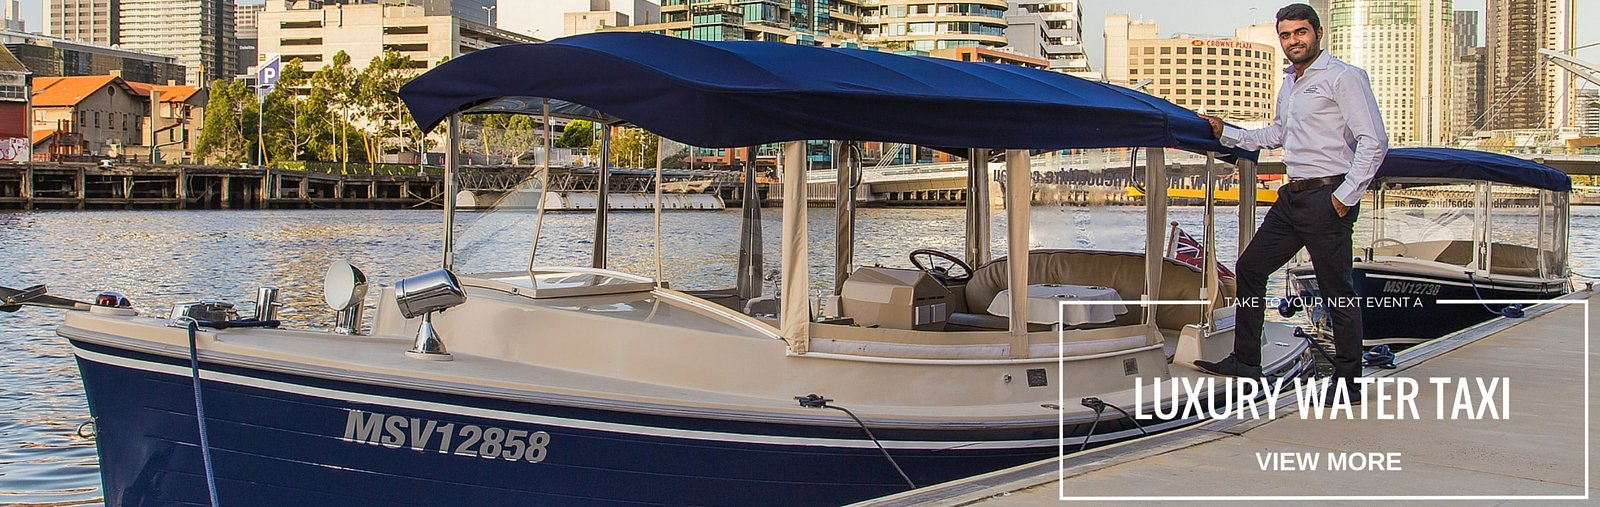 take a luxury water taxi to your next event